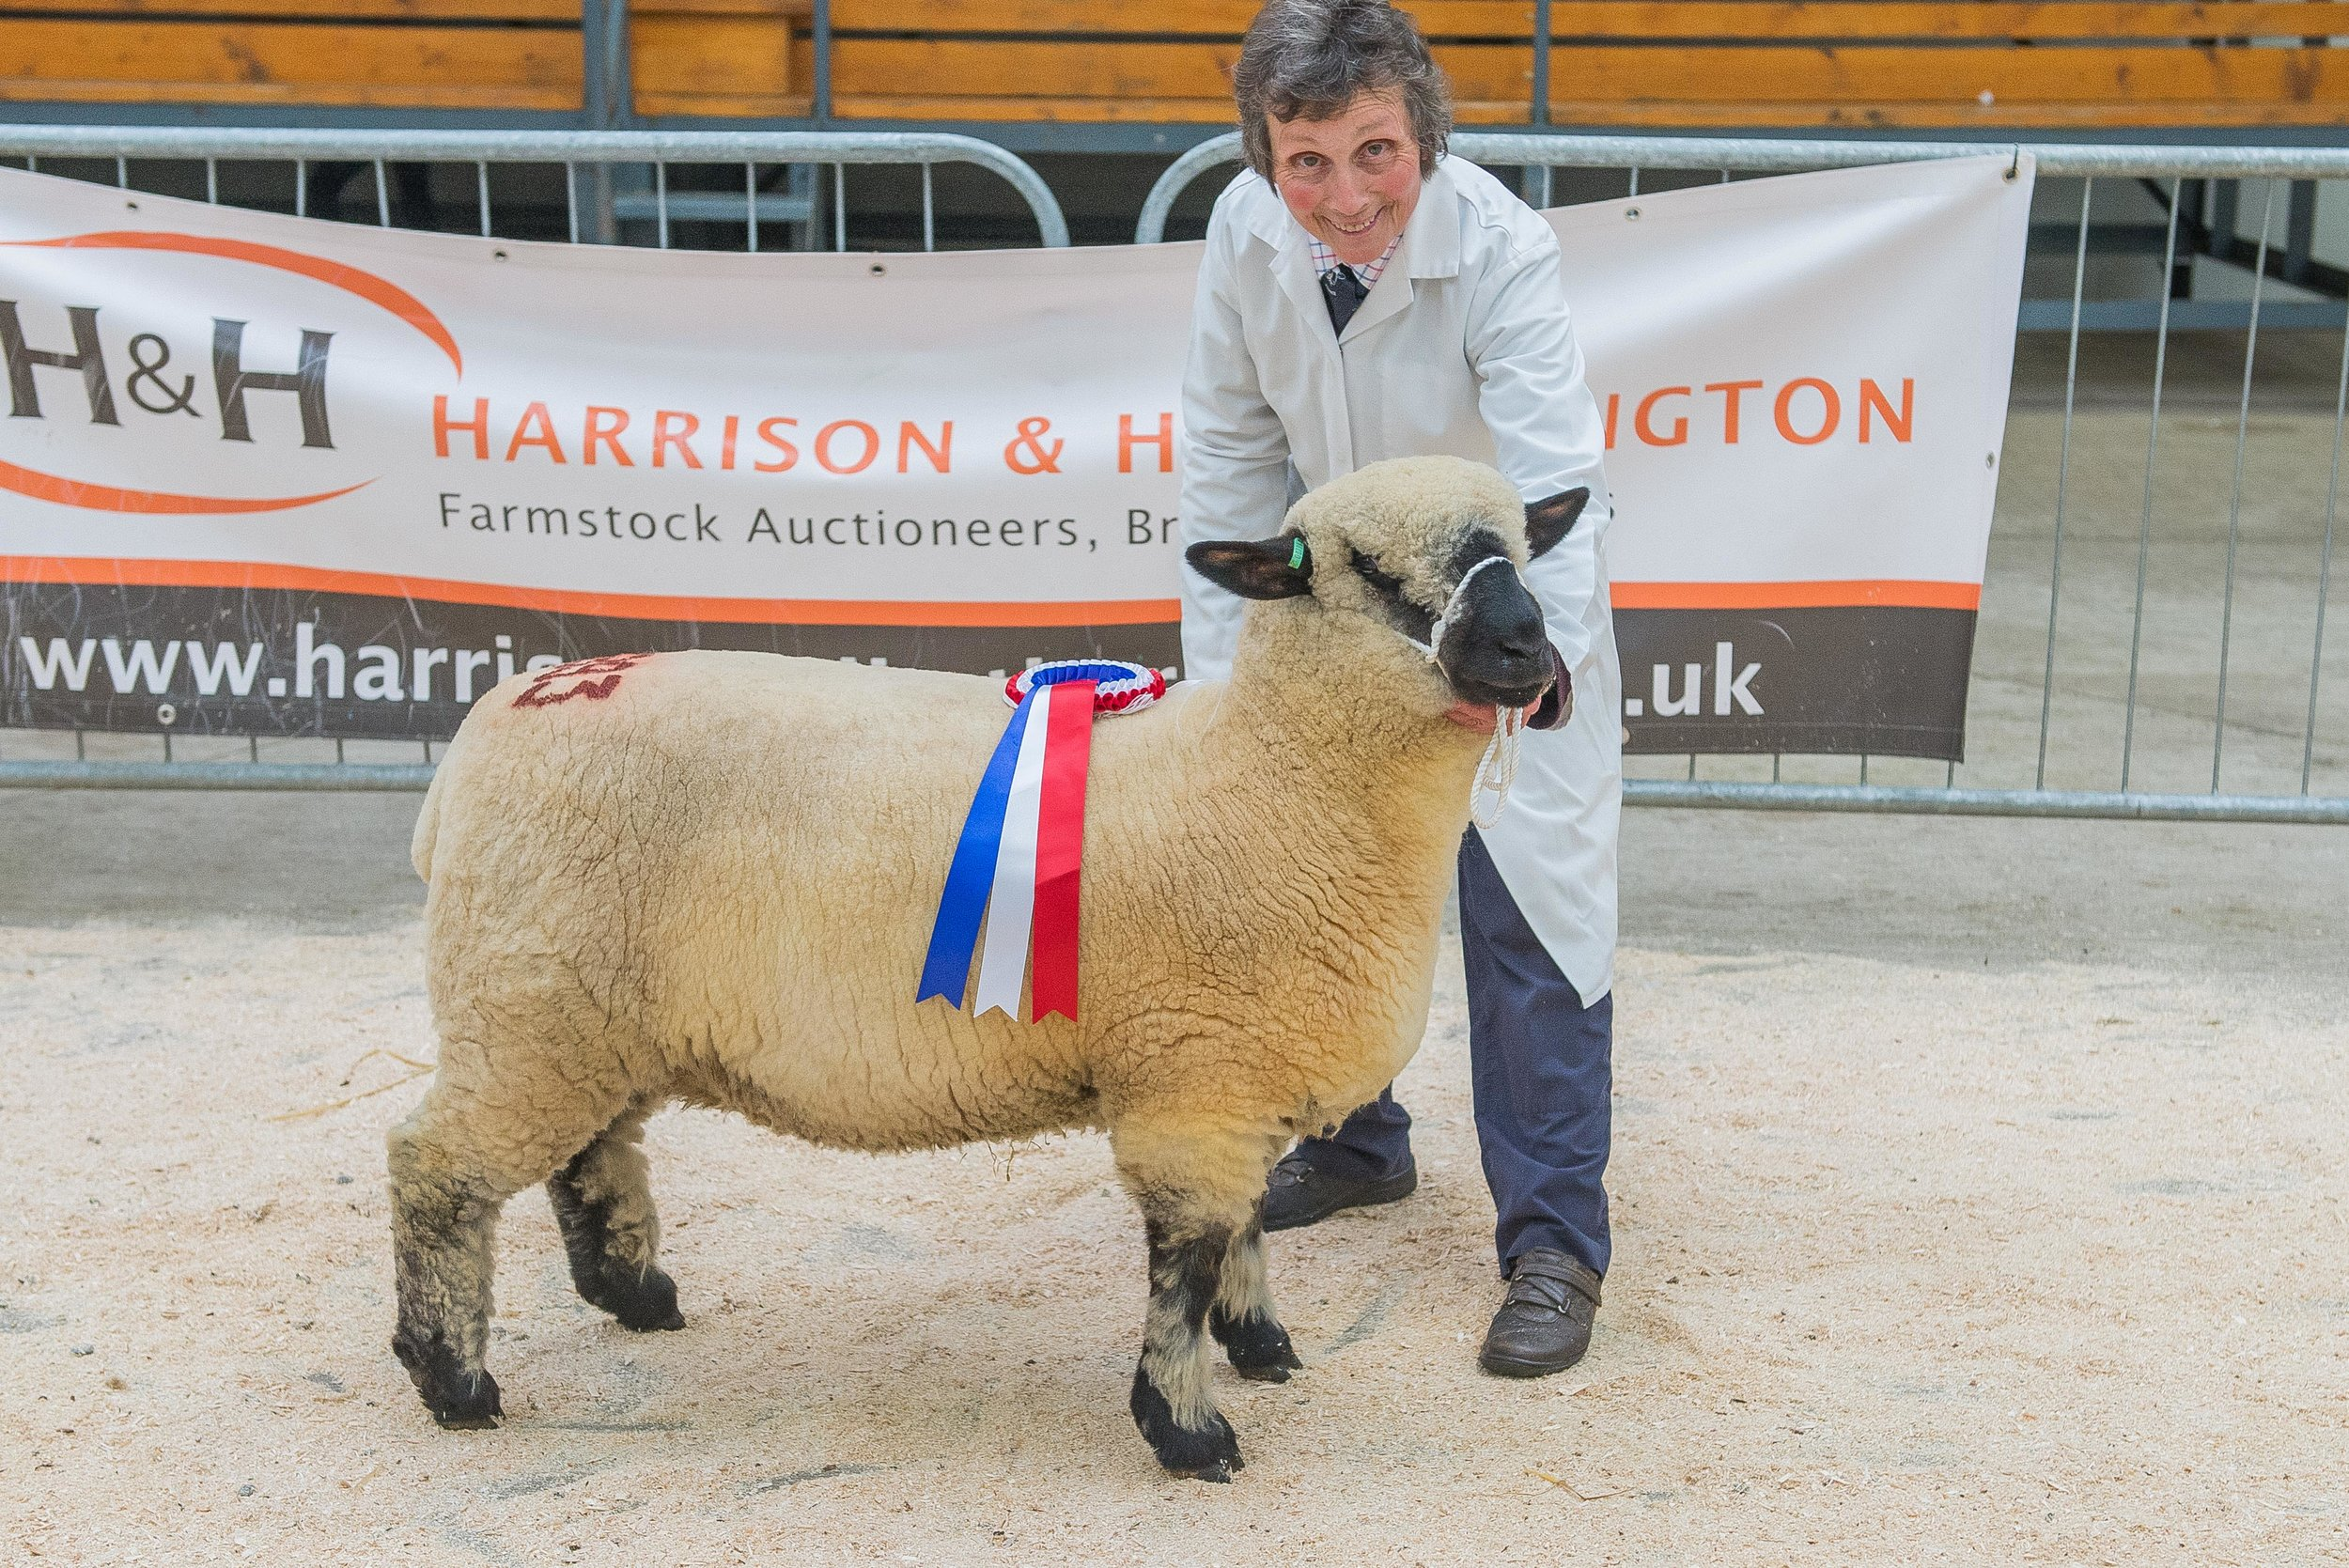 Carlisle Hampshire Down Female Record-breaking 2000 gns Ewe Lamb from Maes Glas